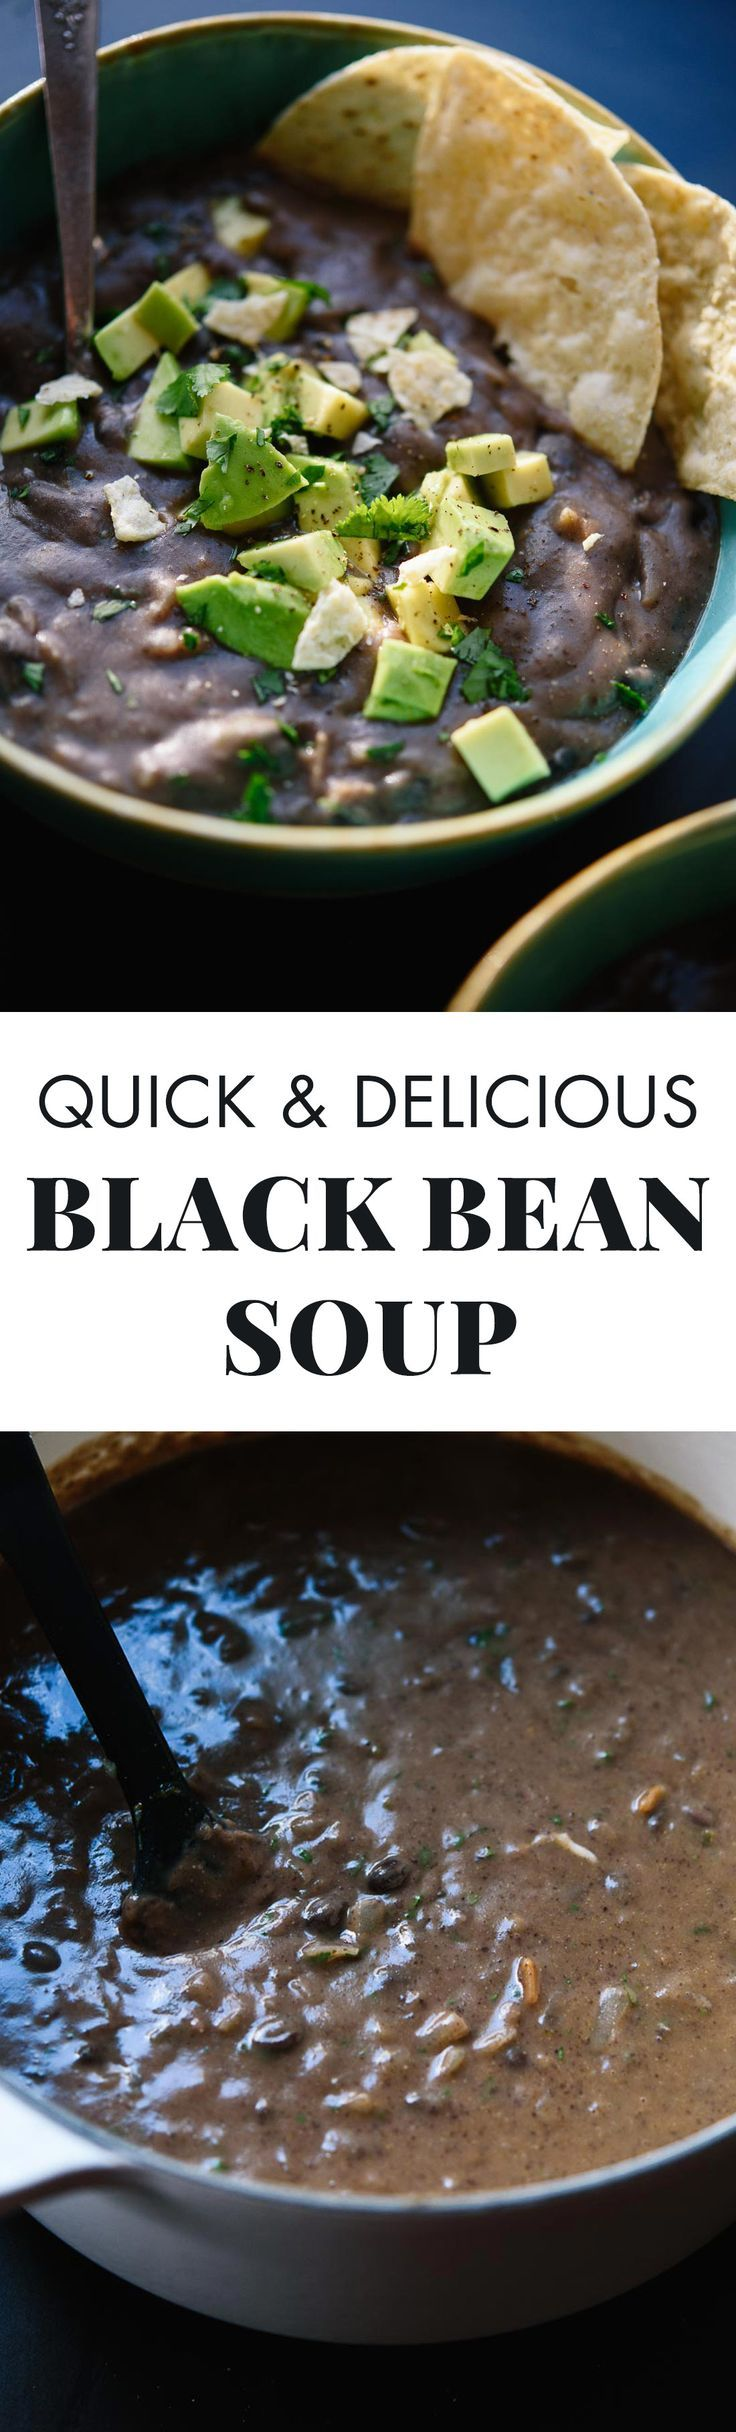 This popular black bean soup recipe is easy to make with canned beans and tastes SO fresh and delicious! It's going to be your new favorite soup. Vegan and gluten free.